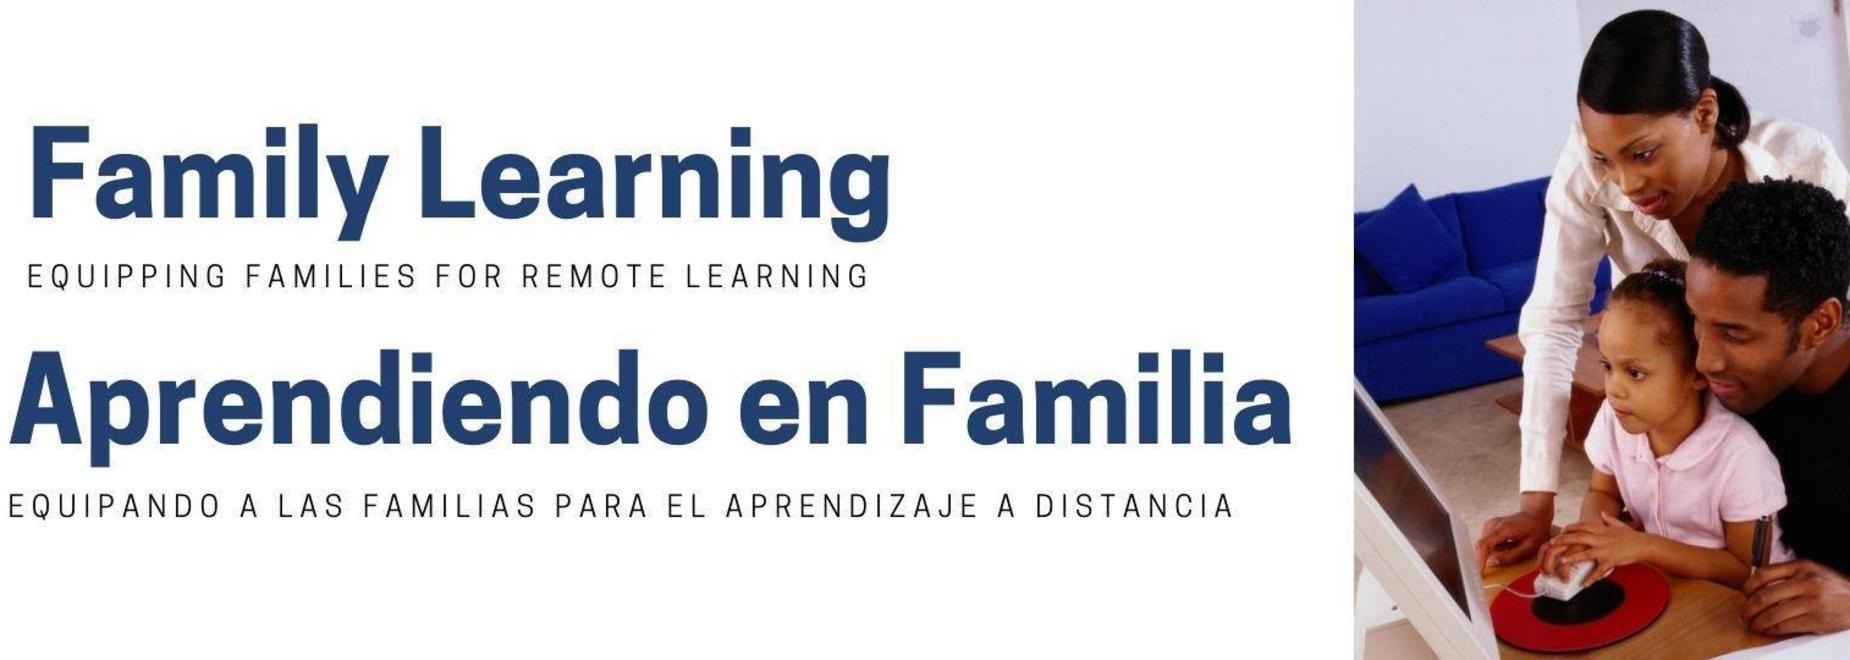 Family learning, equipping families for remote learning. Aprendiendo en familia, equipando a las familias para el aprendizaje a distancia